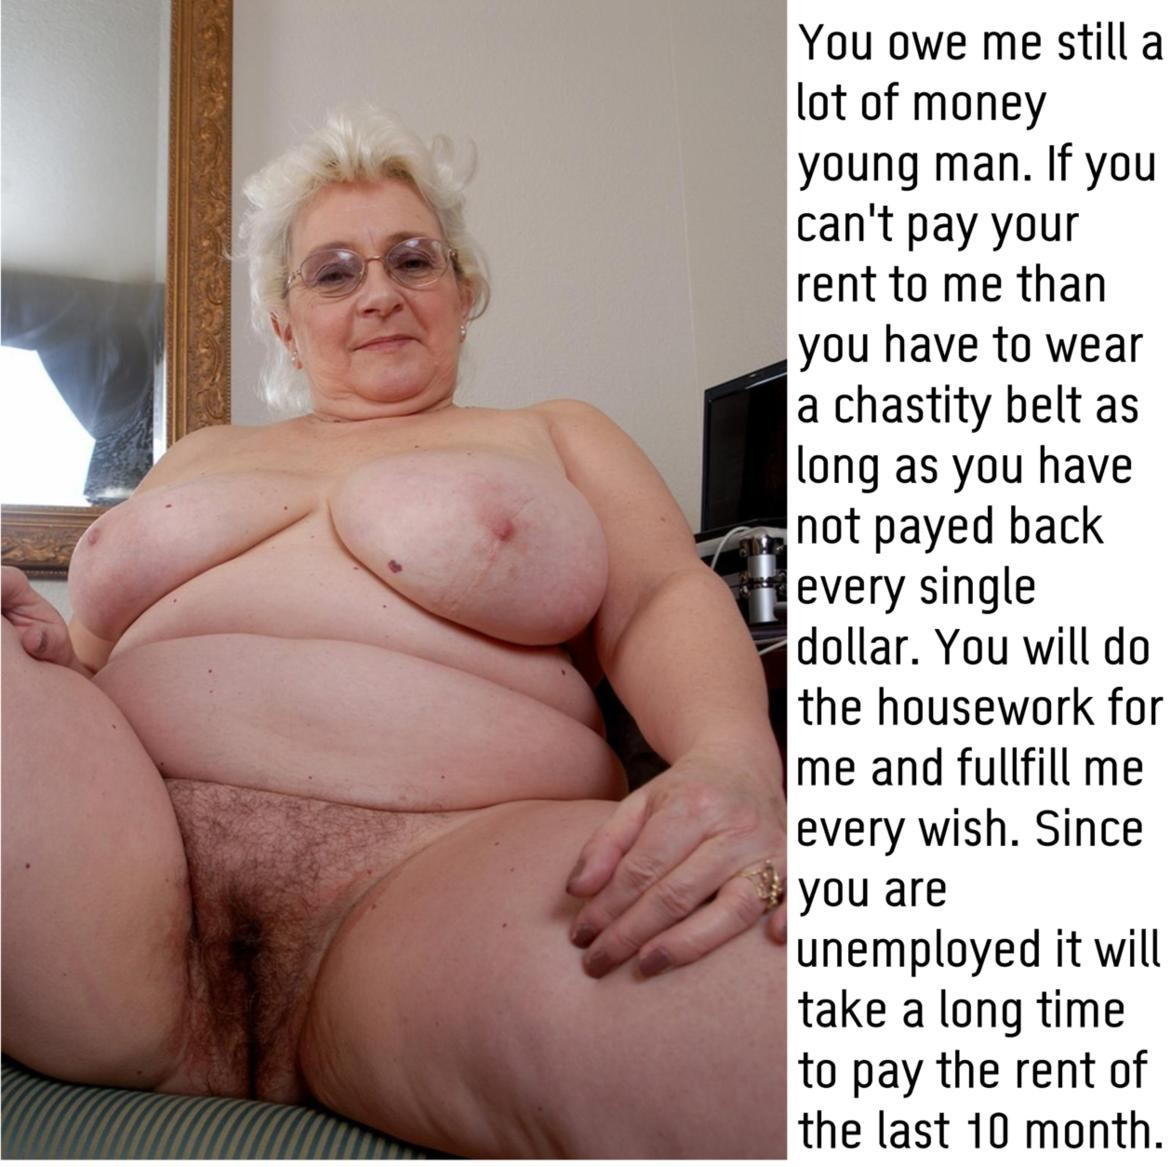 like this idea, juicy big boobed indian lady exposing her boobs on cam sorry, can help